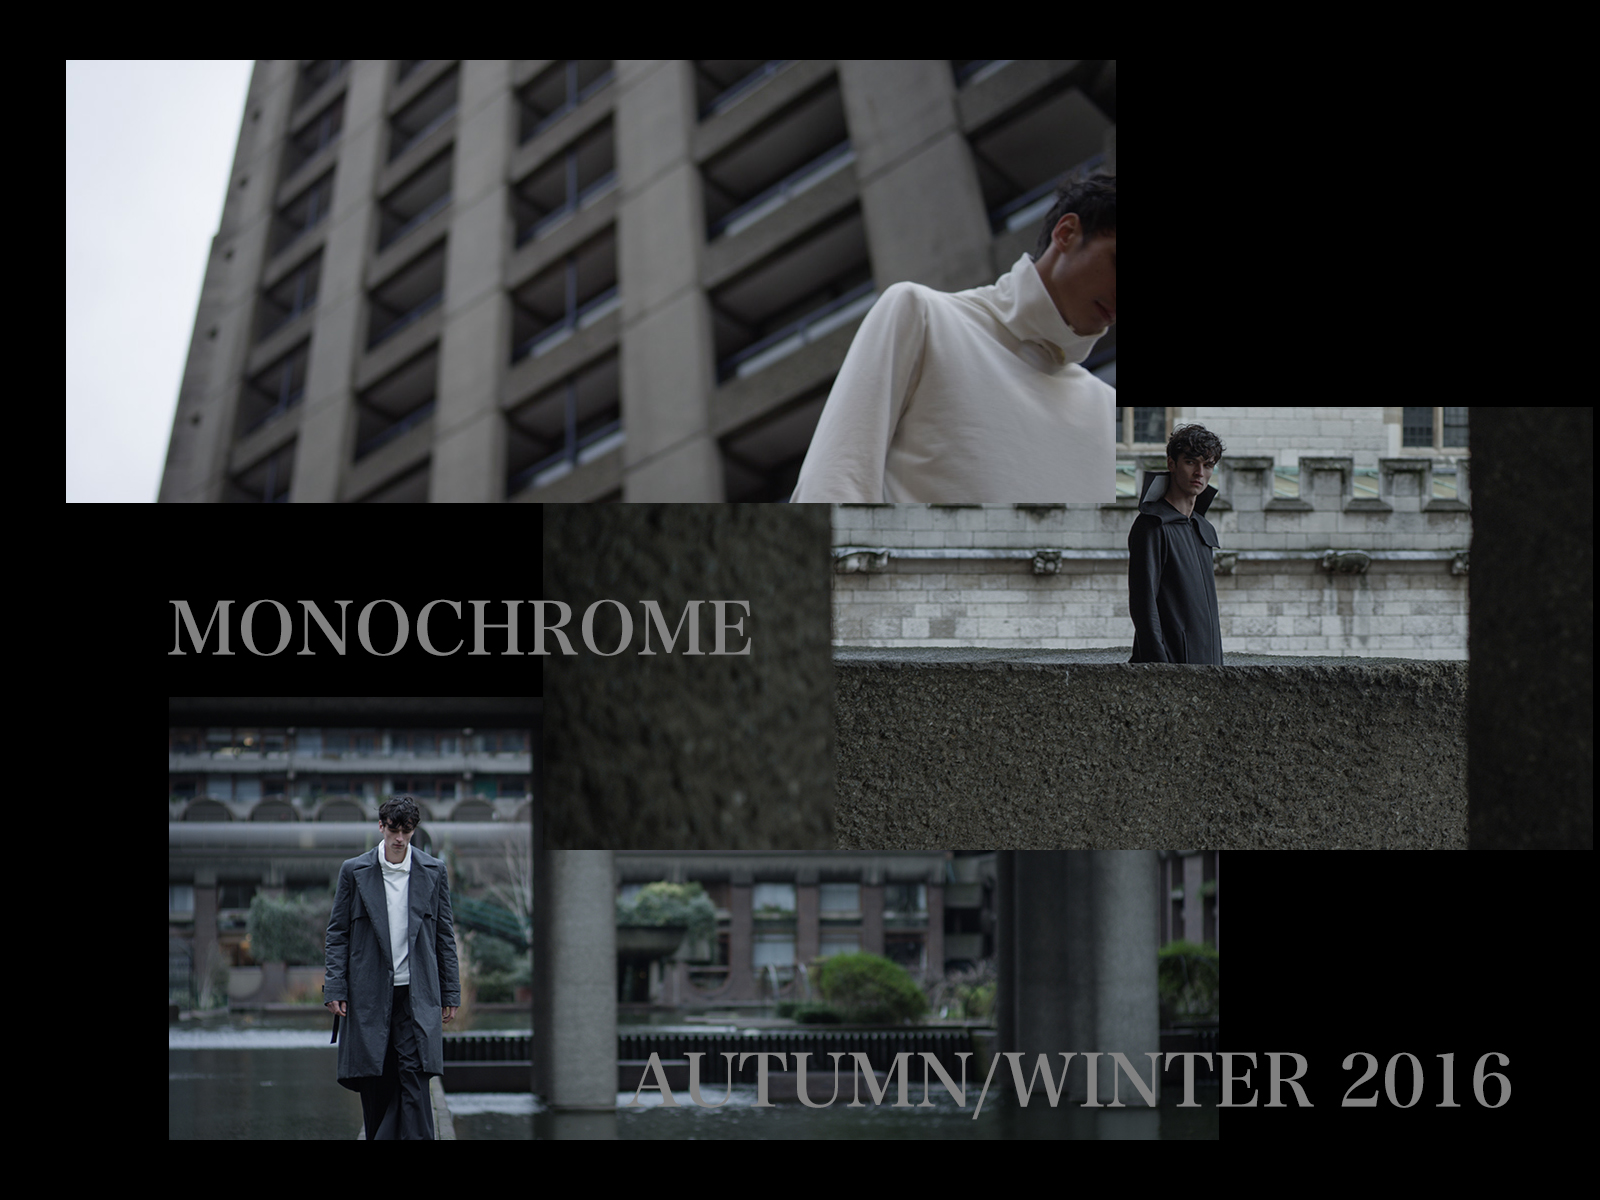 MONOCHROME – AUTUMN/WINTER 2016 [BRUTALISM]